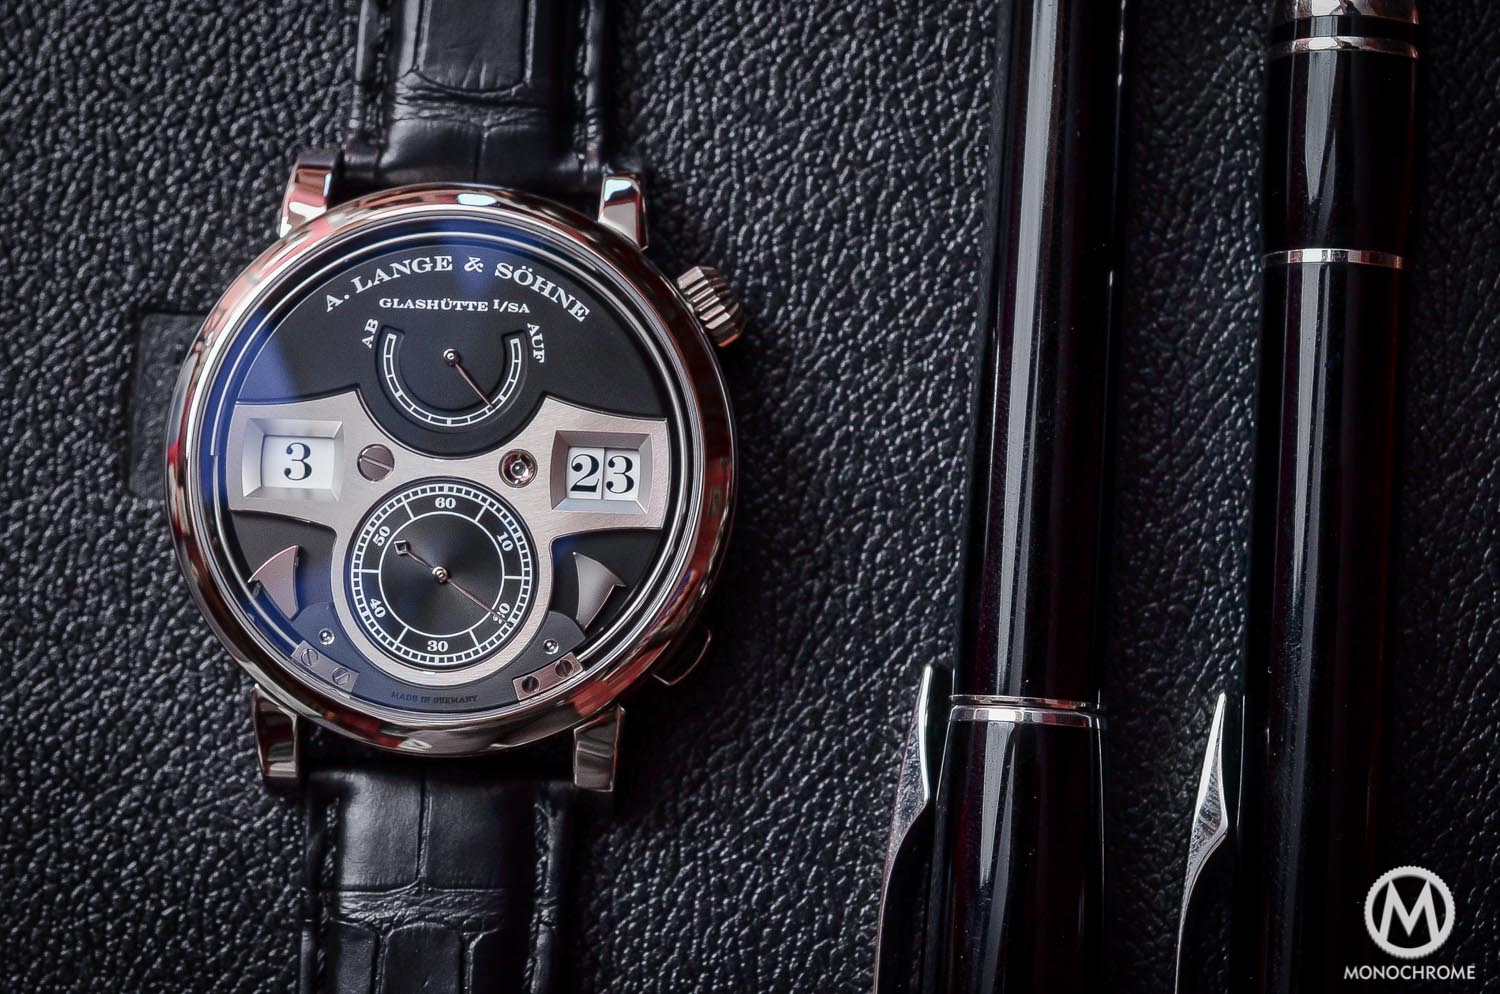 A. Lange & Sohne Zeitwerk Striking Time watch replica